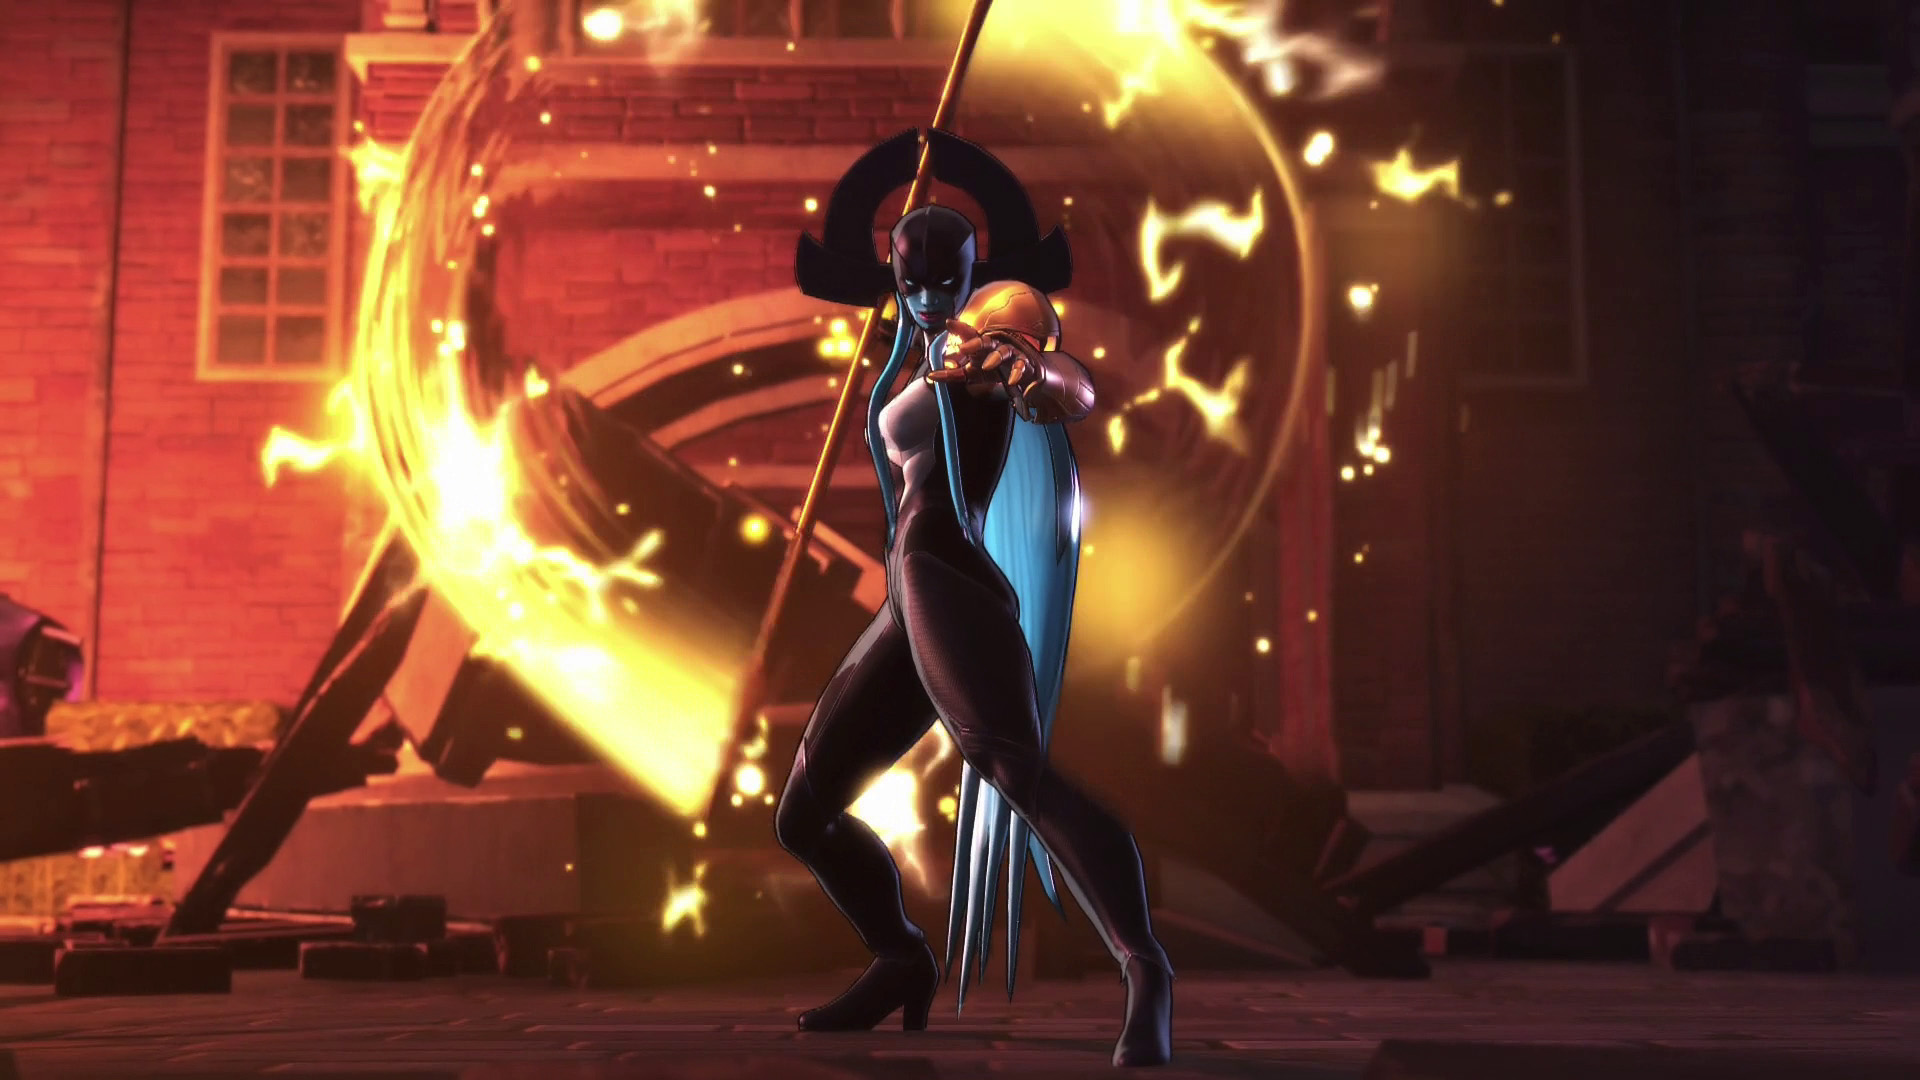 Today on Impulse, we talk about the characters we wanna see as DLC in Marvel Ultimate Alliance 3! screenshot